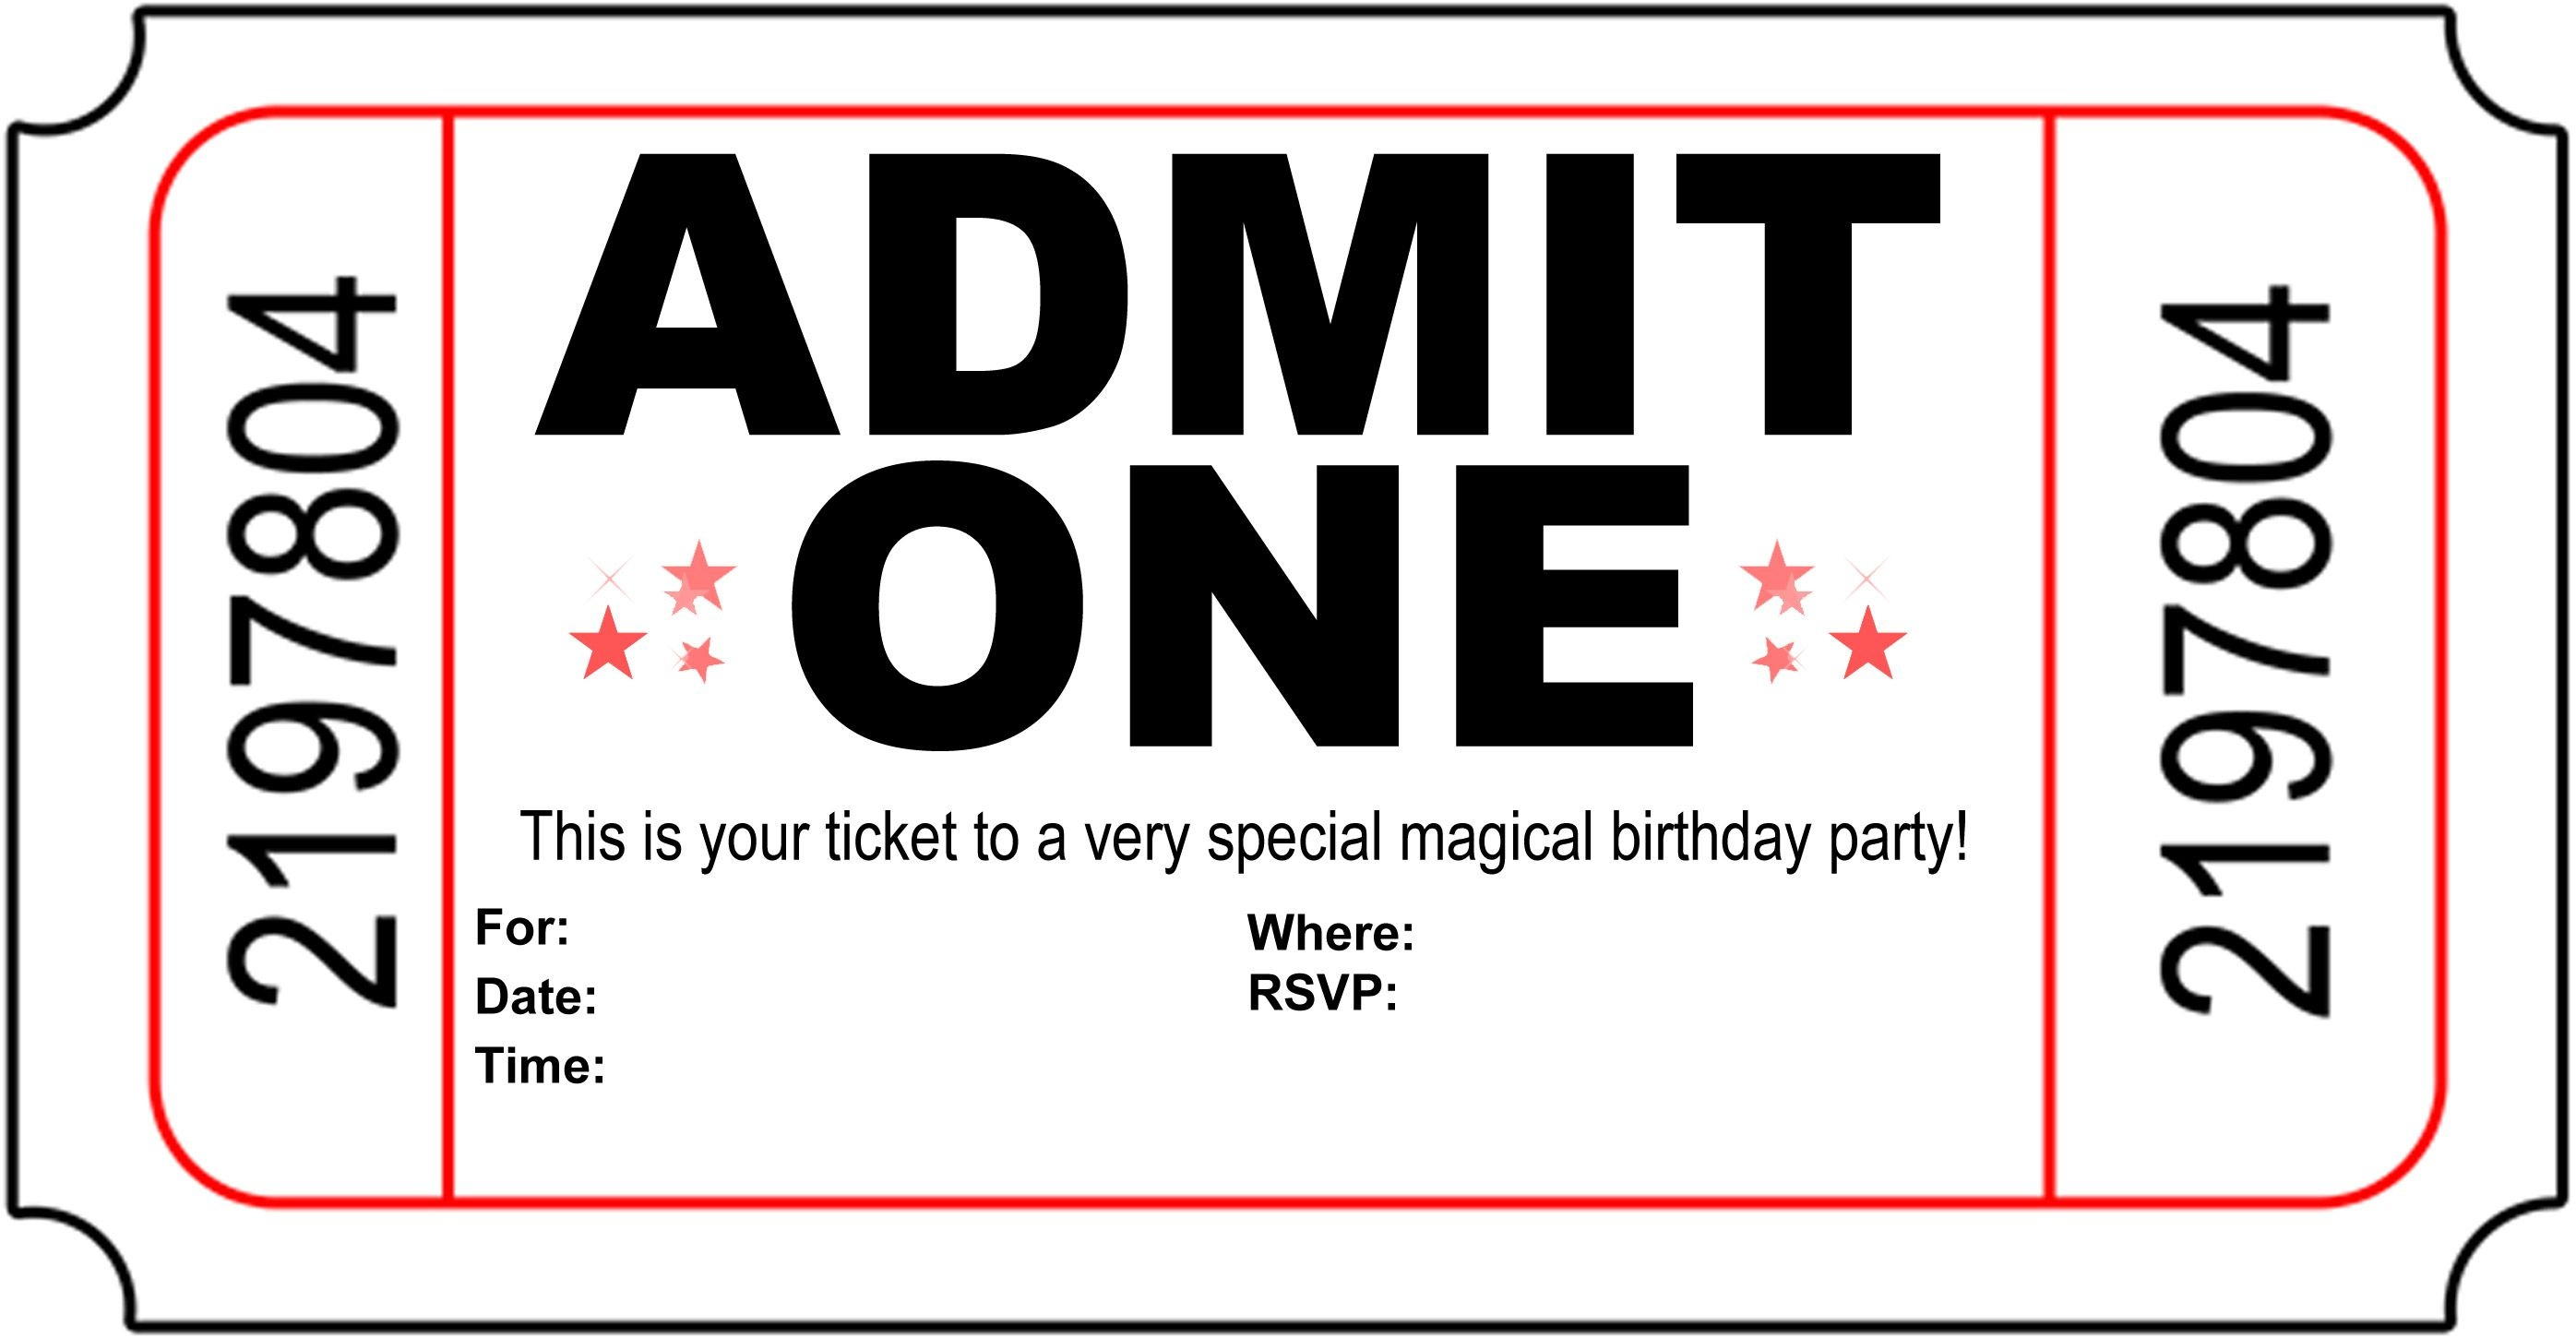 Free Printable Birthday Party Invitations - Kansas Magician | Magic - Free Printable Movie Ticket Birthday Party Invitations